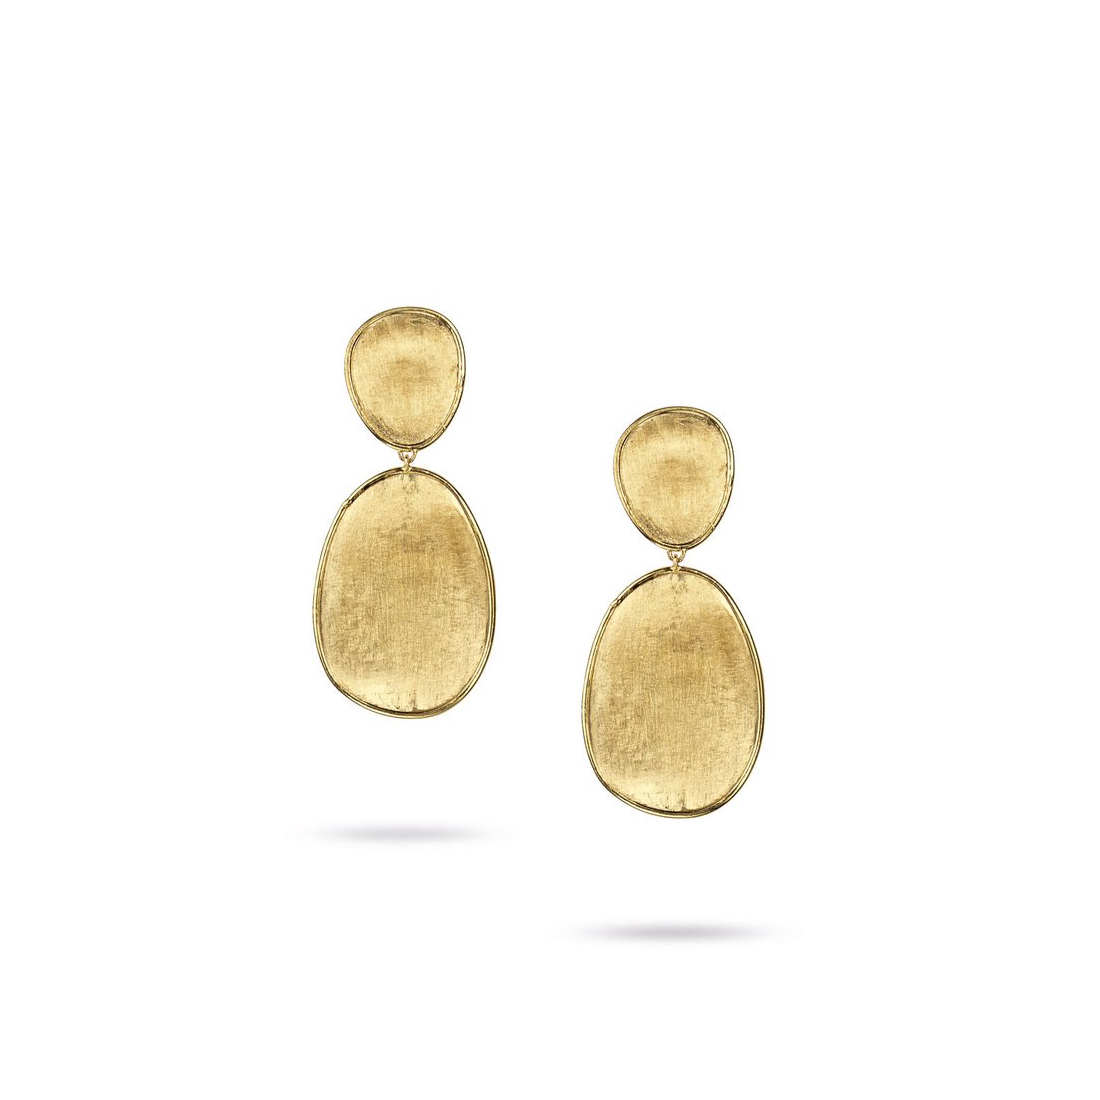 Lunaria Double Drop Earrings OB1345Y02 Marco Bicego Marshall Pierce & Company Chicago